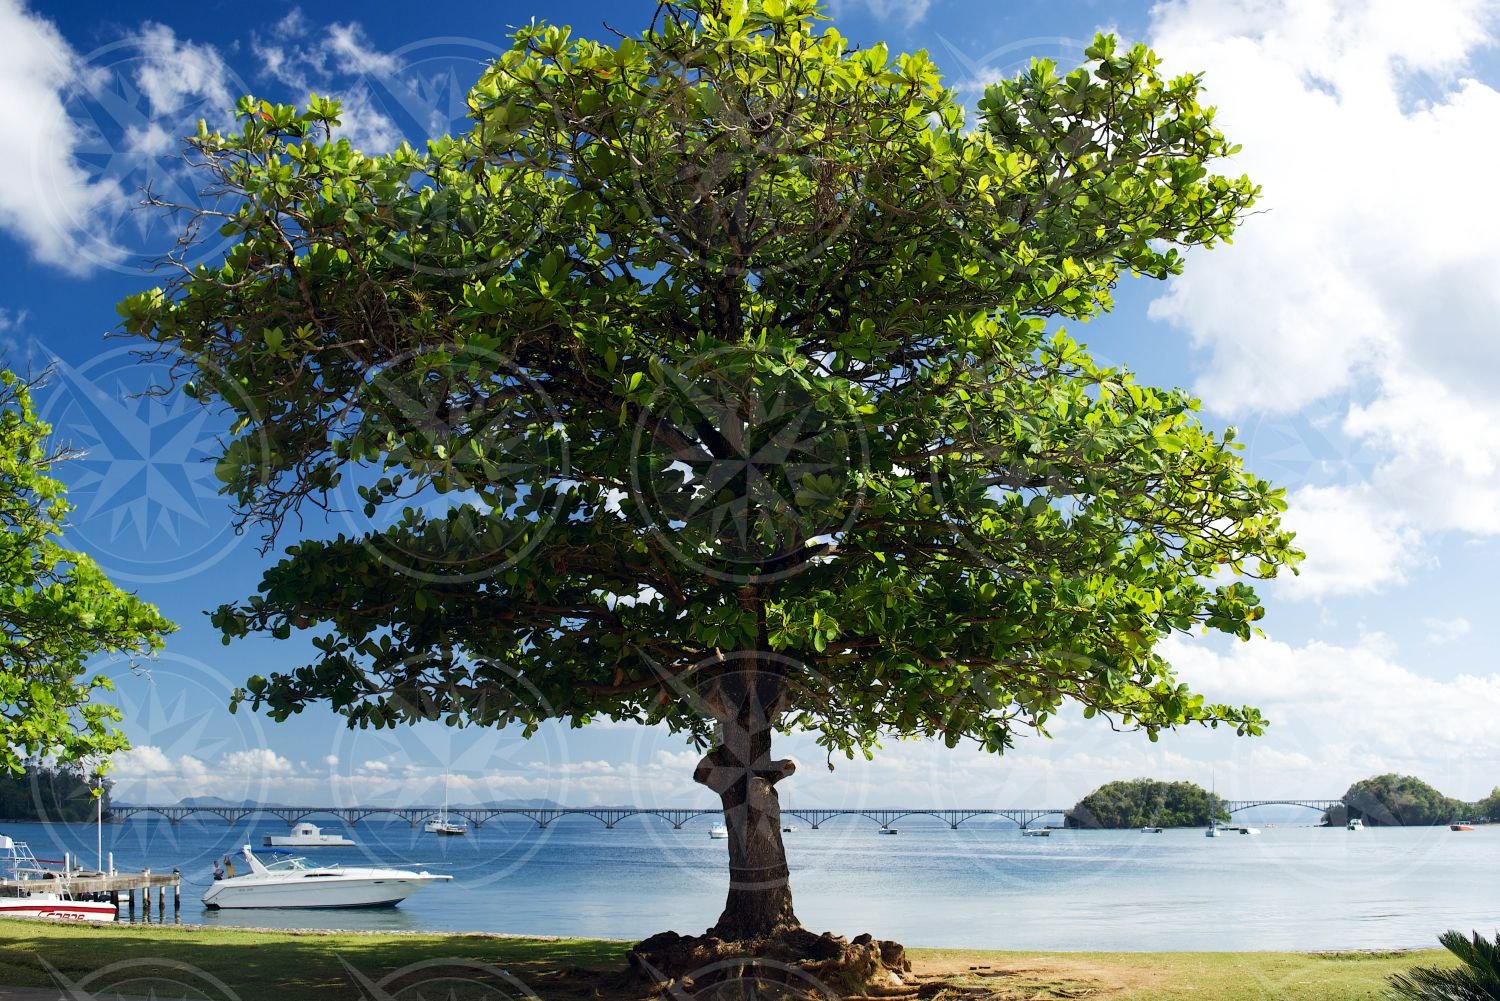 Tree in Samana, Dominican Republic